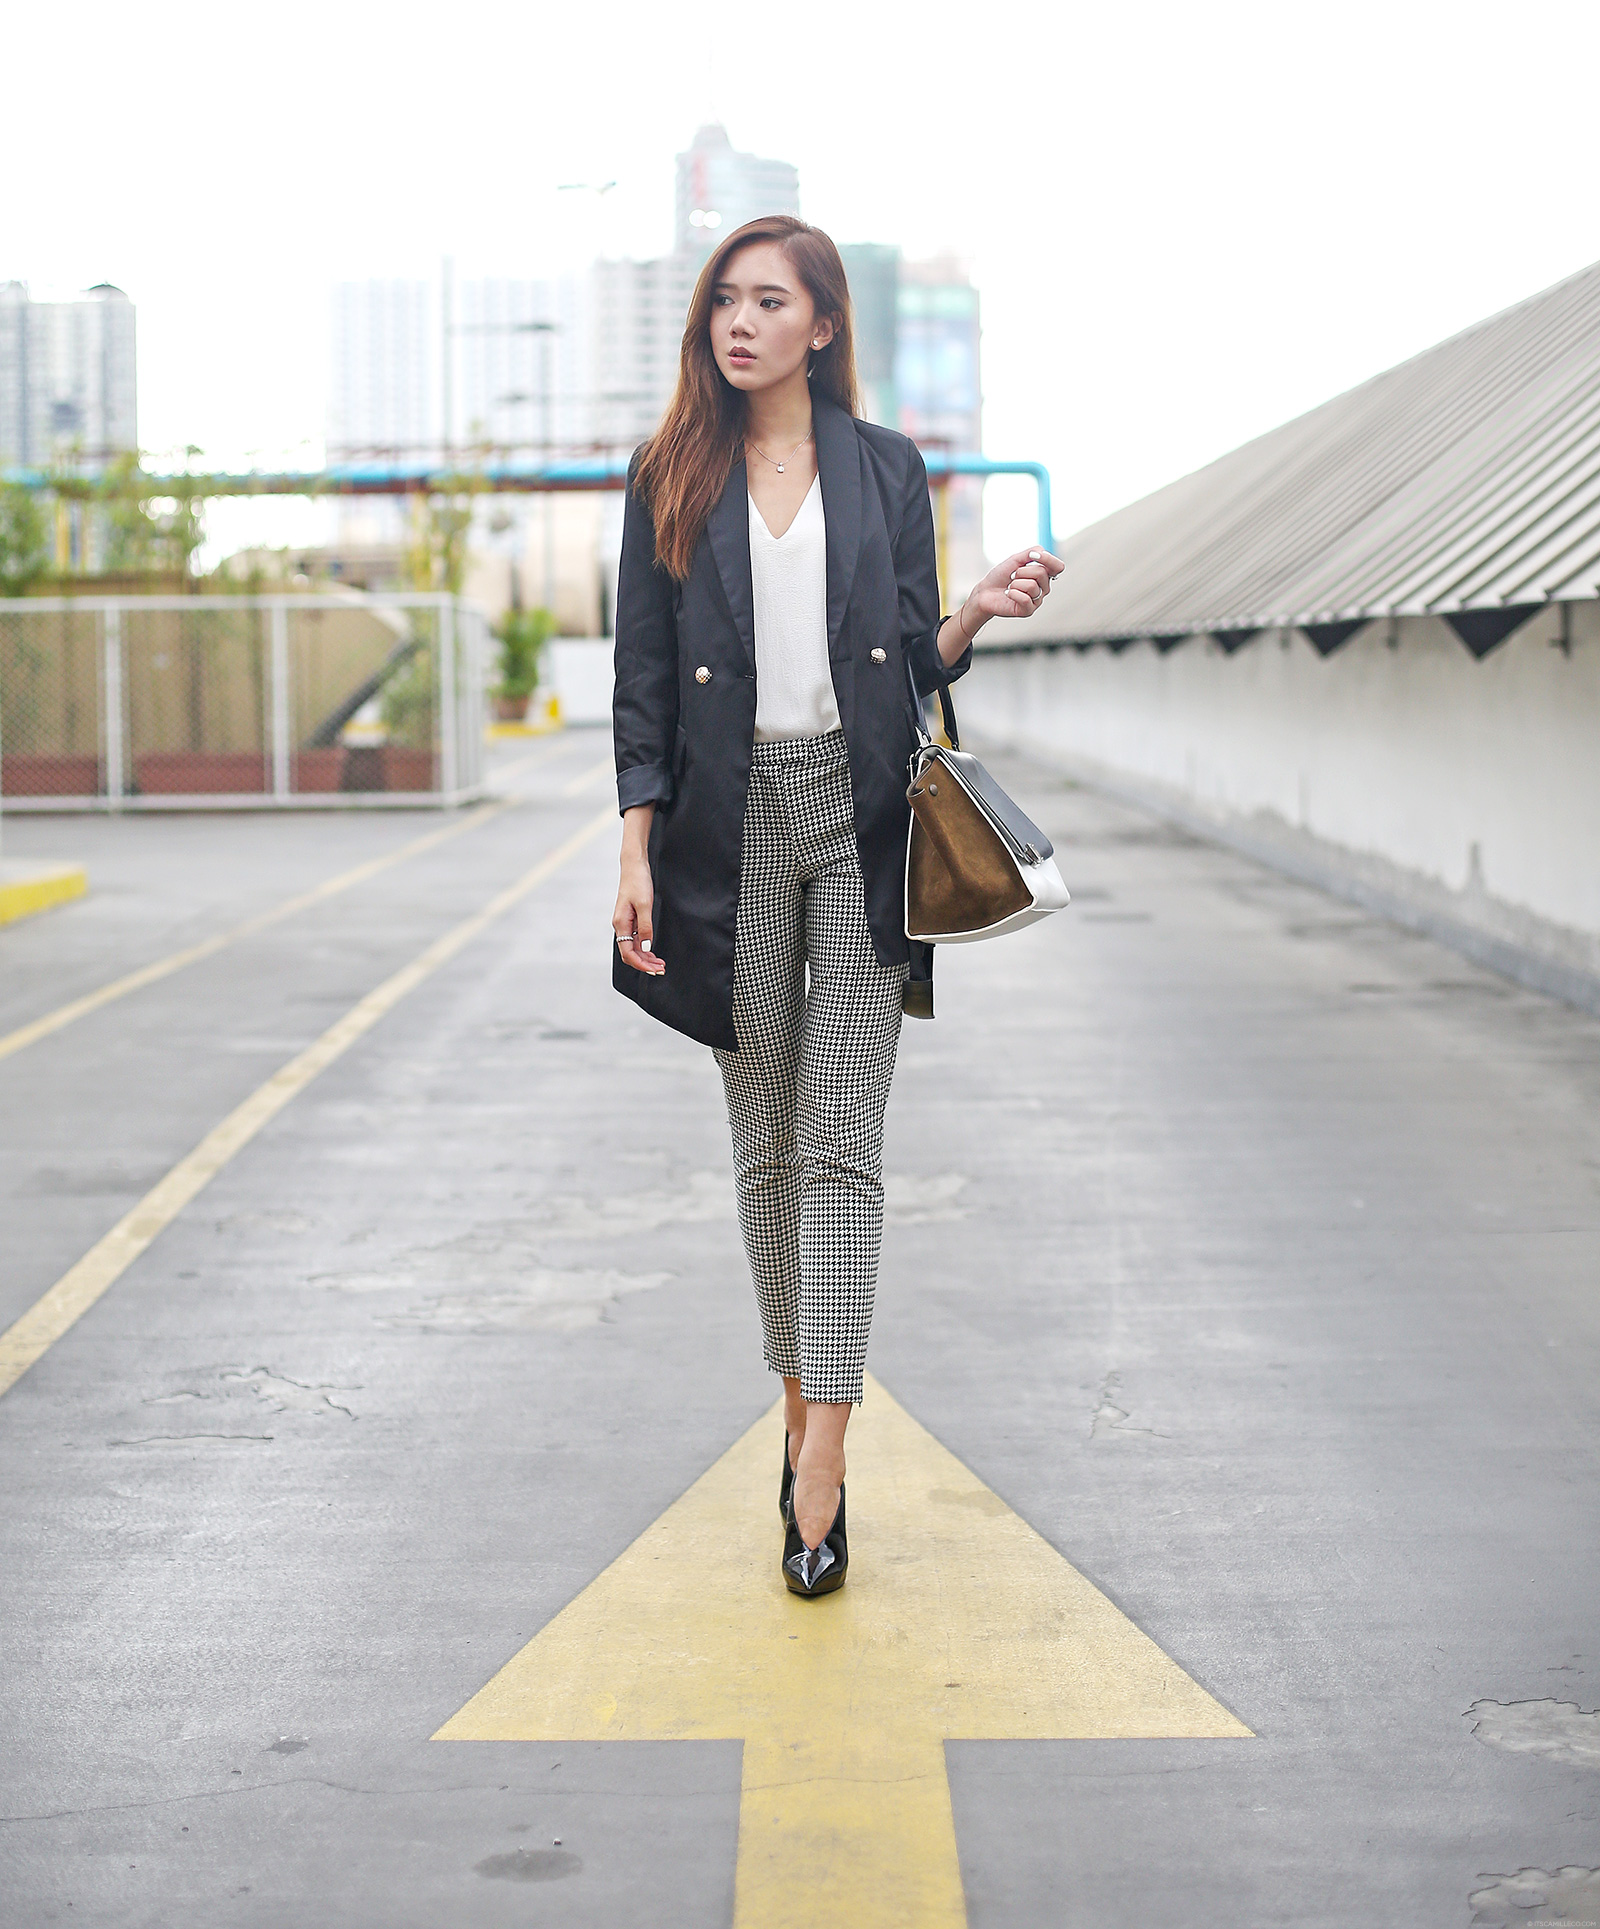 Zaful blazer, Mango top, Topshop pants, Celine bag Giuseppe Zanotti shoes | www.itscamilleco.com